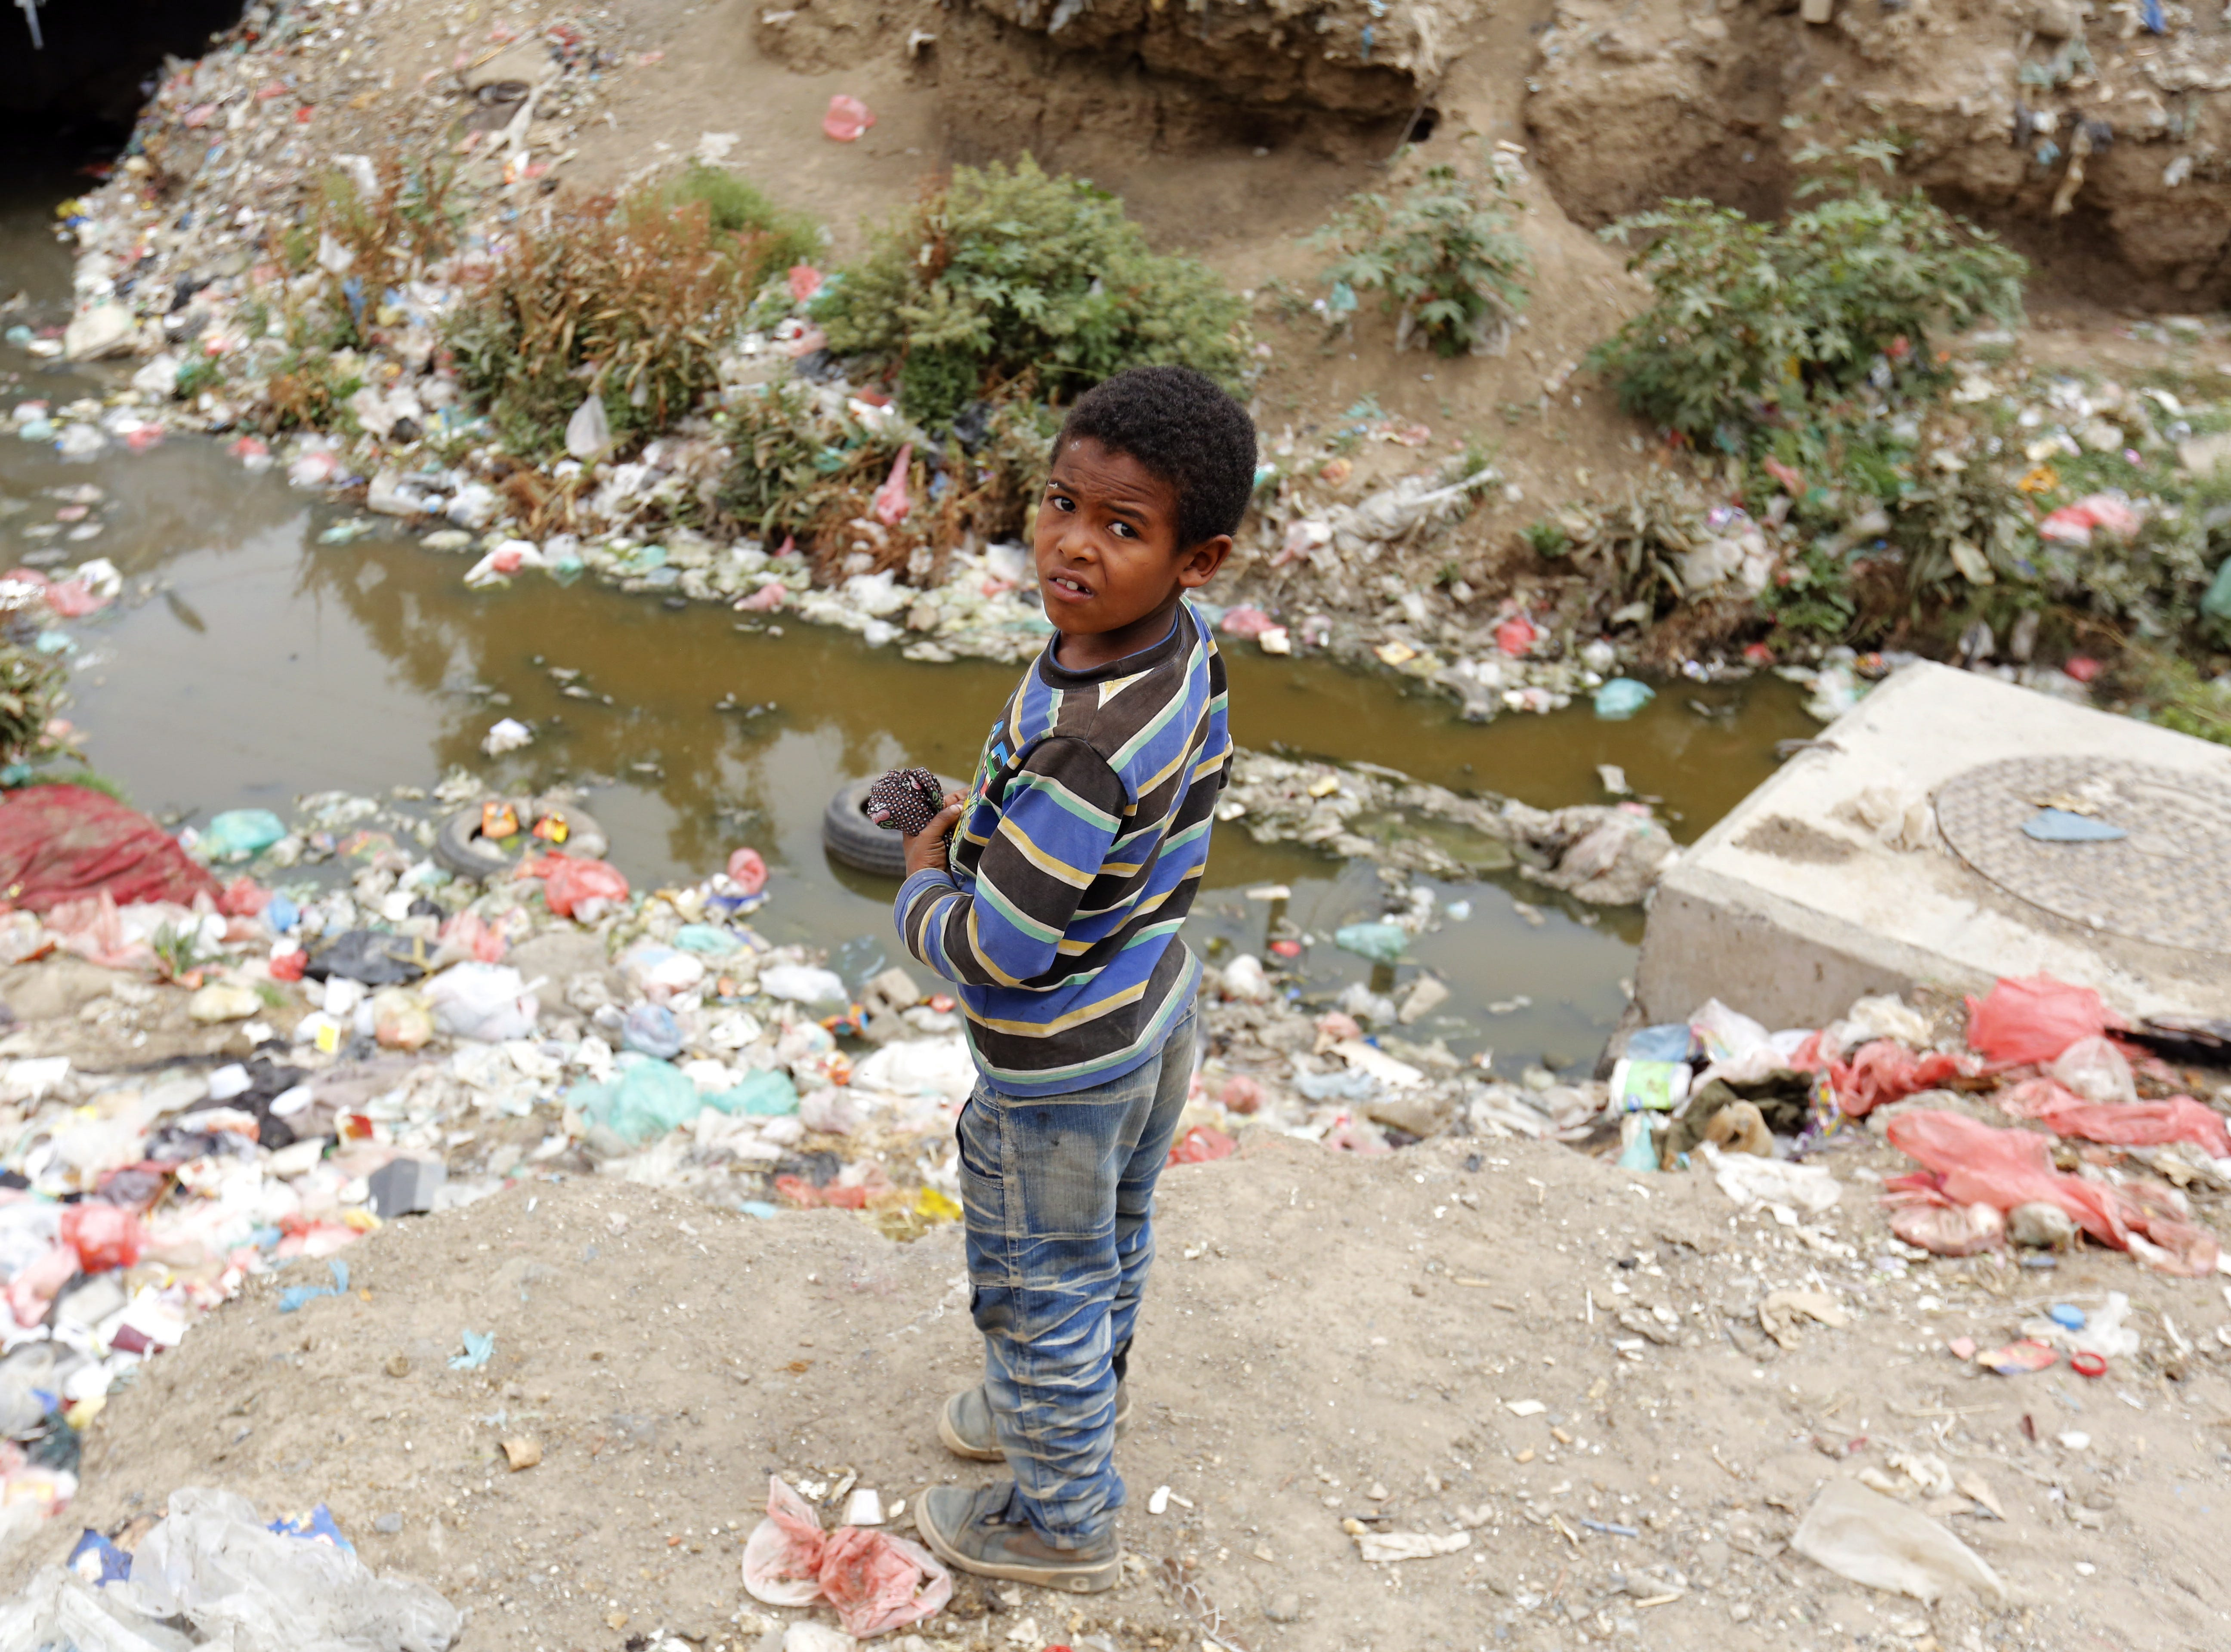 A Yemeni child stands near a sewage swamp covered with waste at a neighborhood, creating a high-risk environment for cholera, amid a rapidly spreading cholera outbreak, in Sana'a, Yemen on April 1, 2019. According to reports, a new wave of a rapidly spreading cholera outbreak in Yemen is getting worse with 10 thousand new cases reported every week since the beginning of 2019, affecting almost 110 thousand people and killing over 200 people.